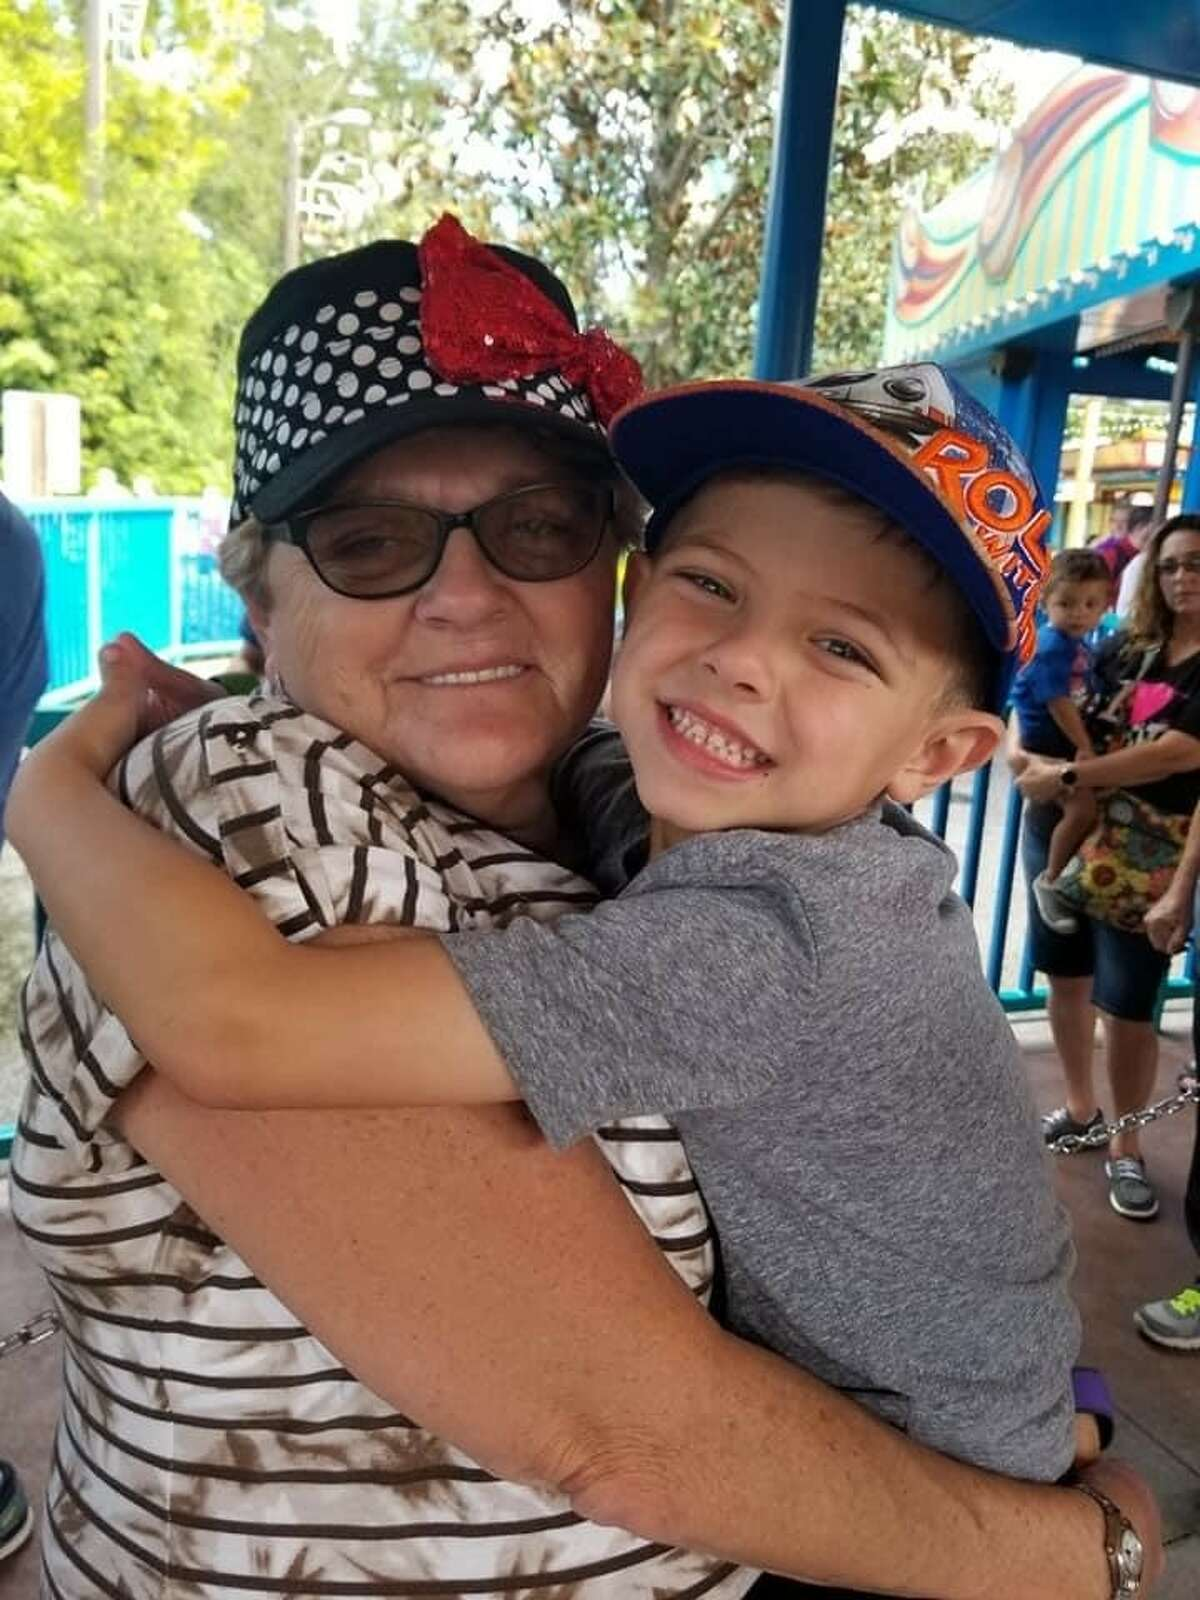 Shirley Reittinger, 65, of Latham, pictured with one of her grandchildren. Reittinger died April 9 in Florida from COVID-19.